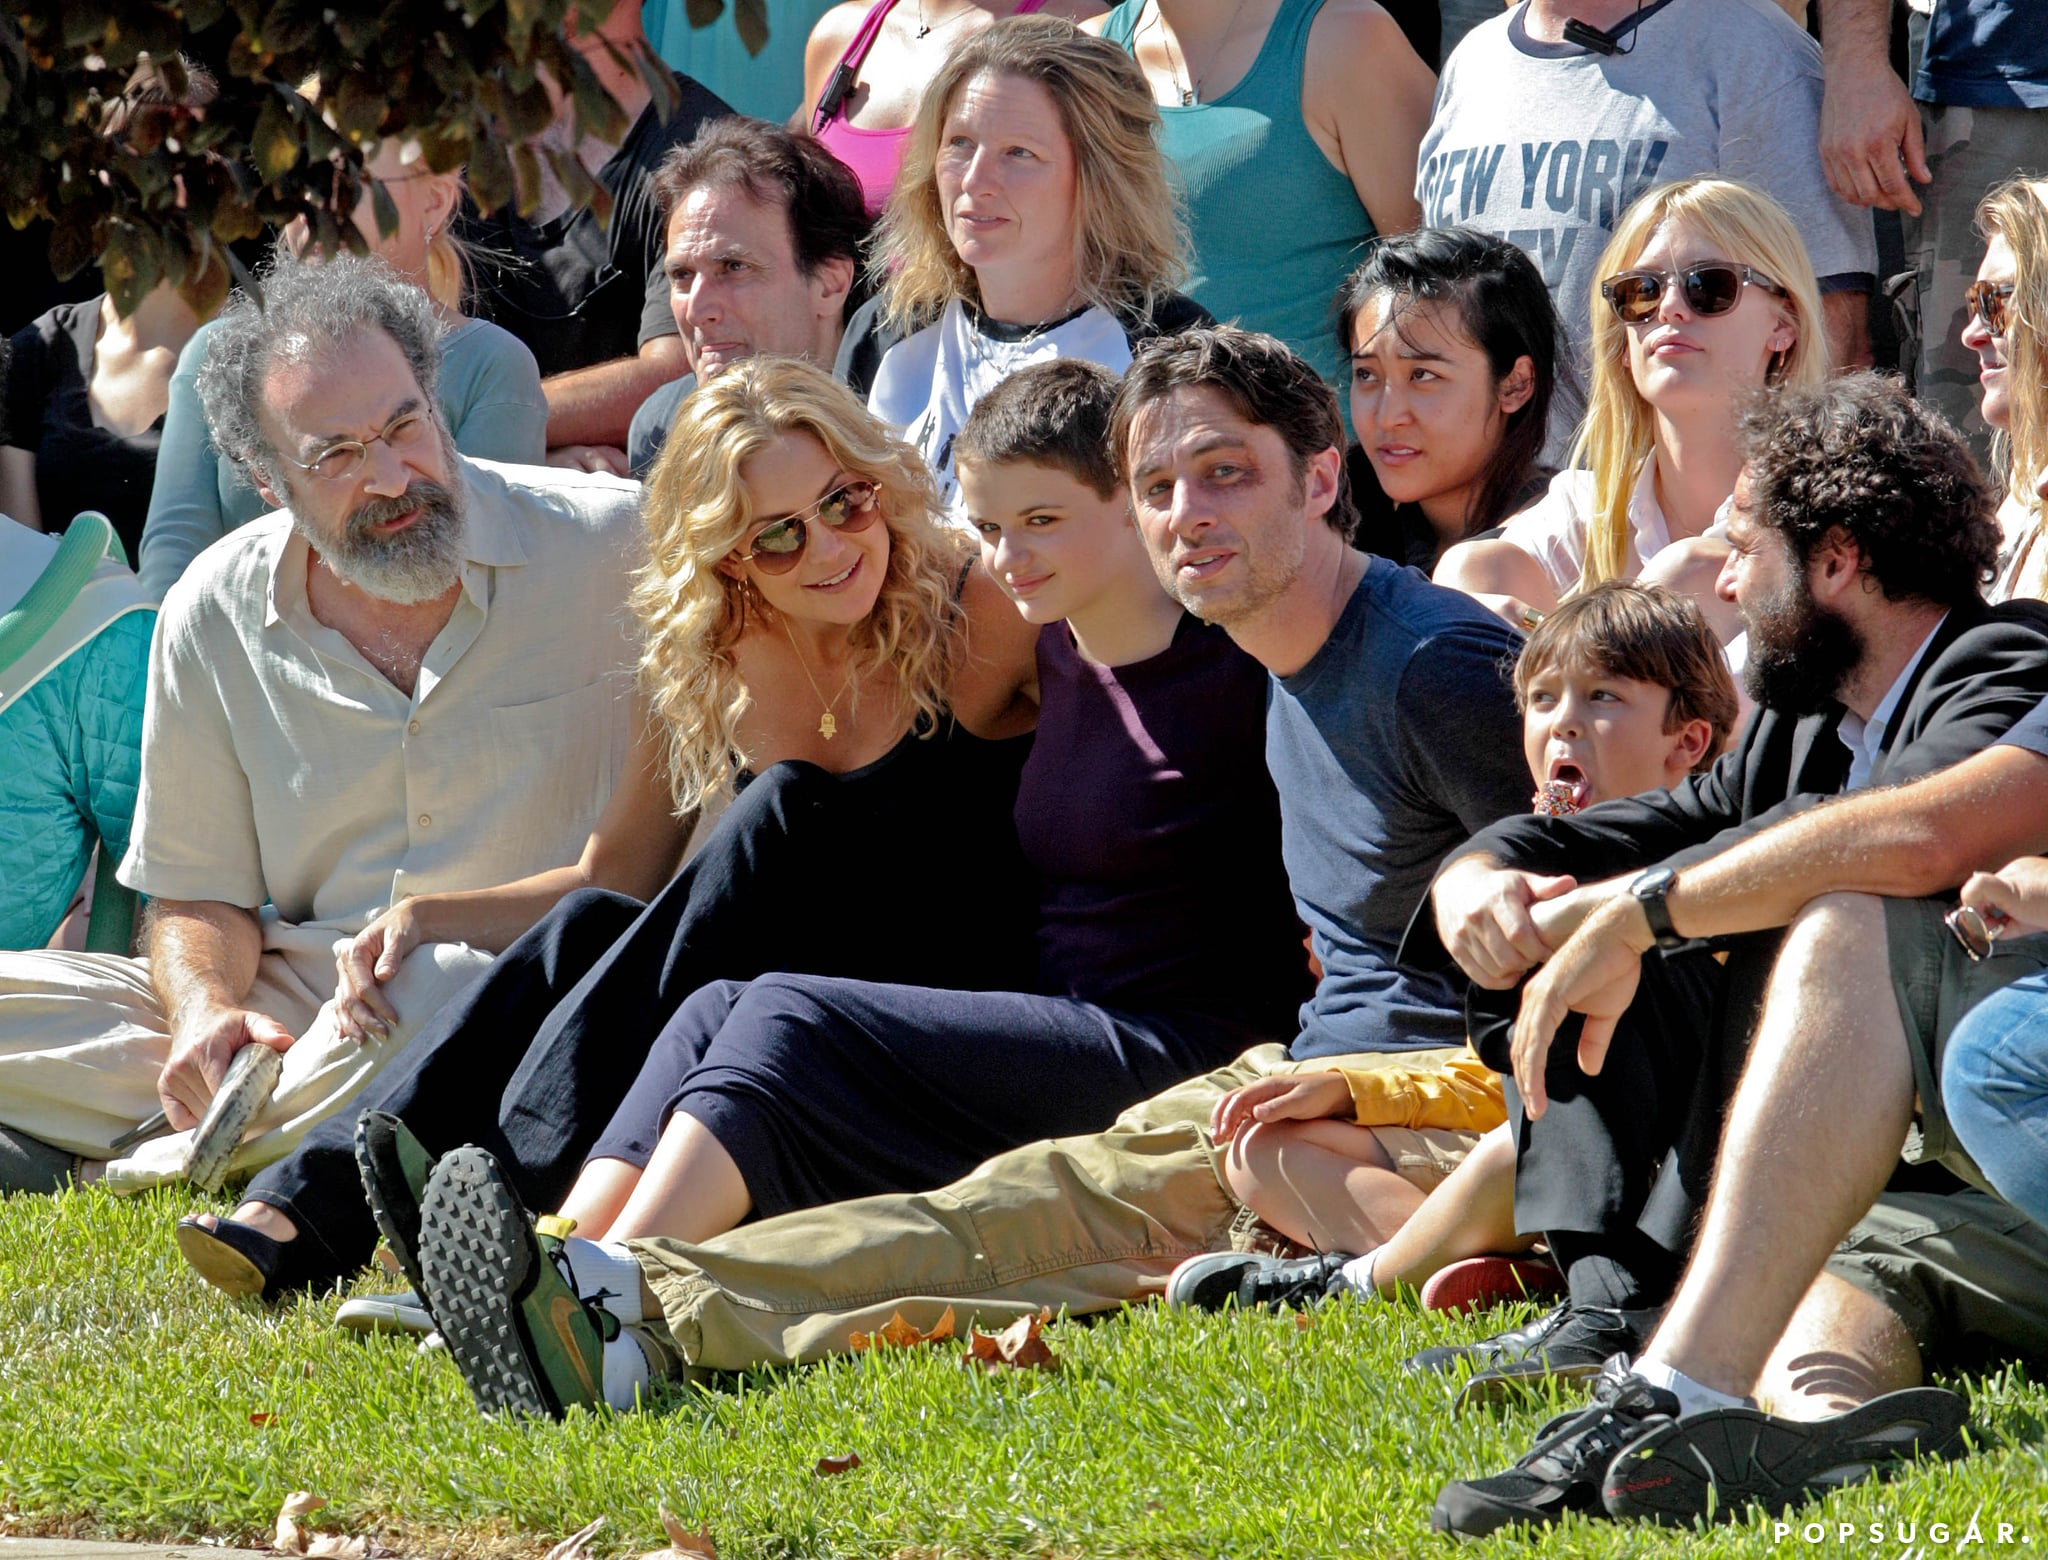 Kate Hudson and Zach Braff posed for a group photo with their cast and crew.